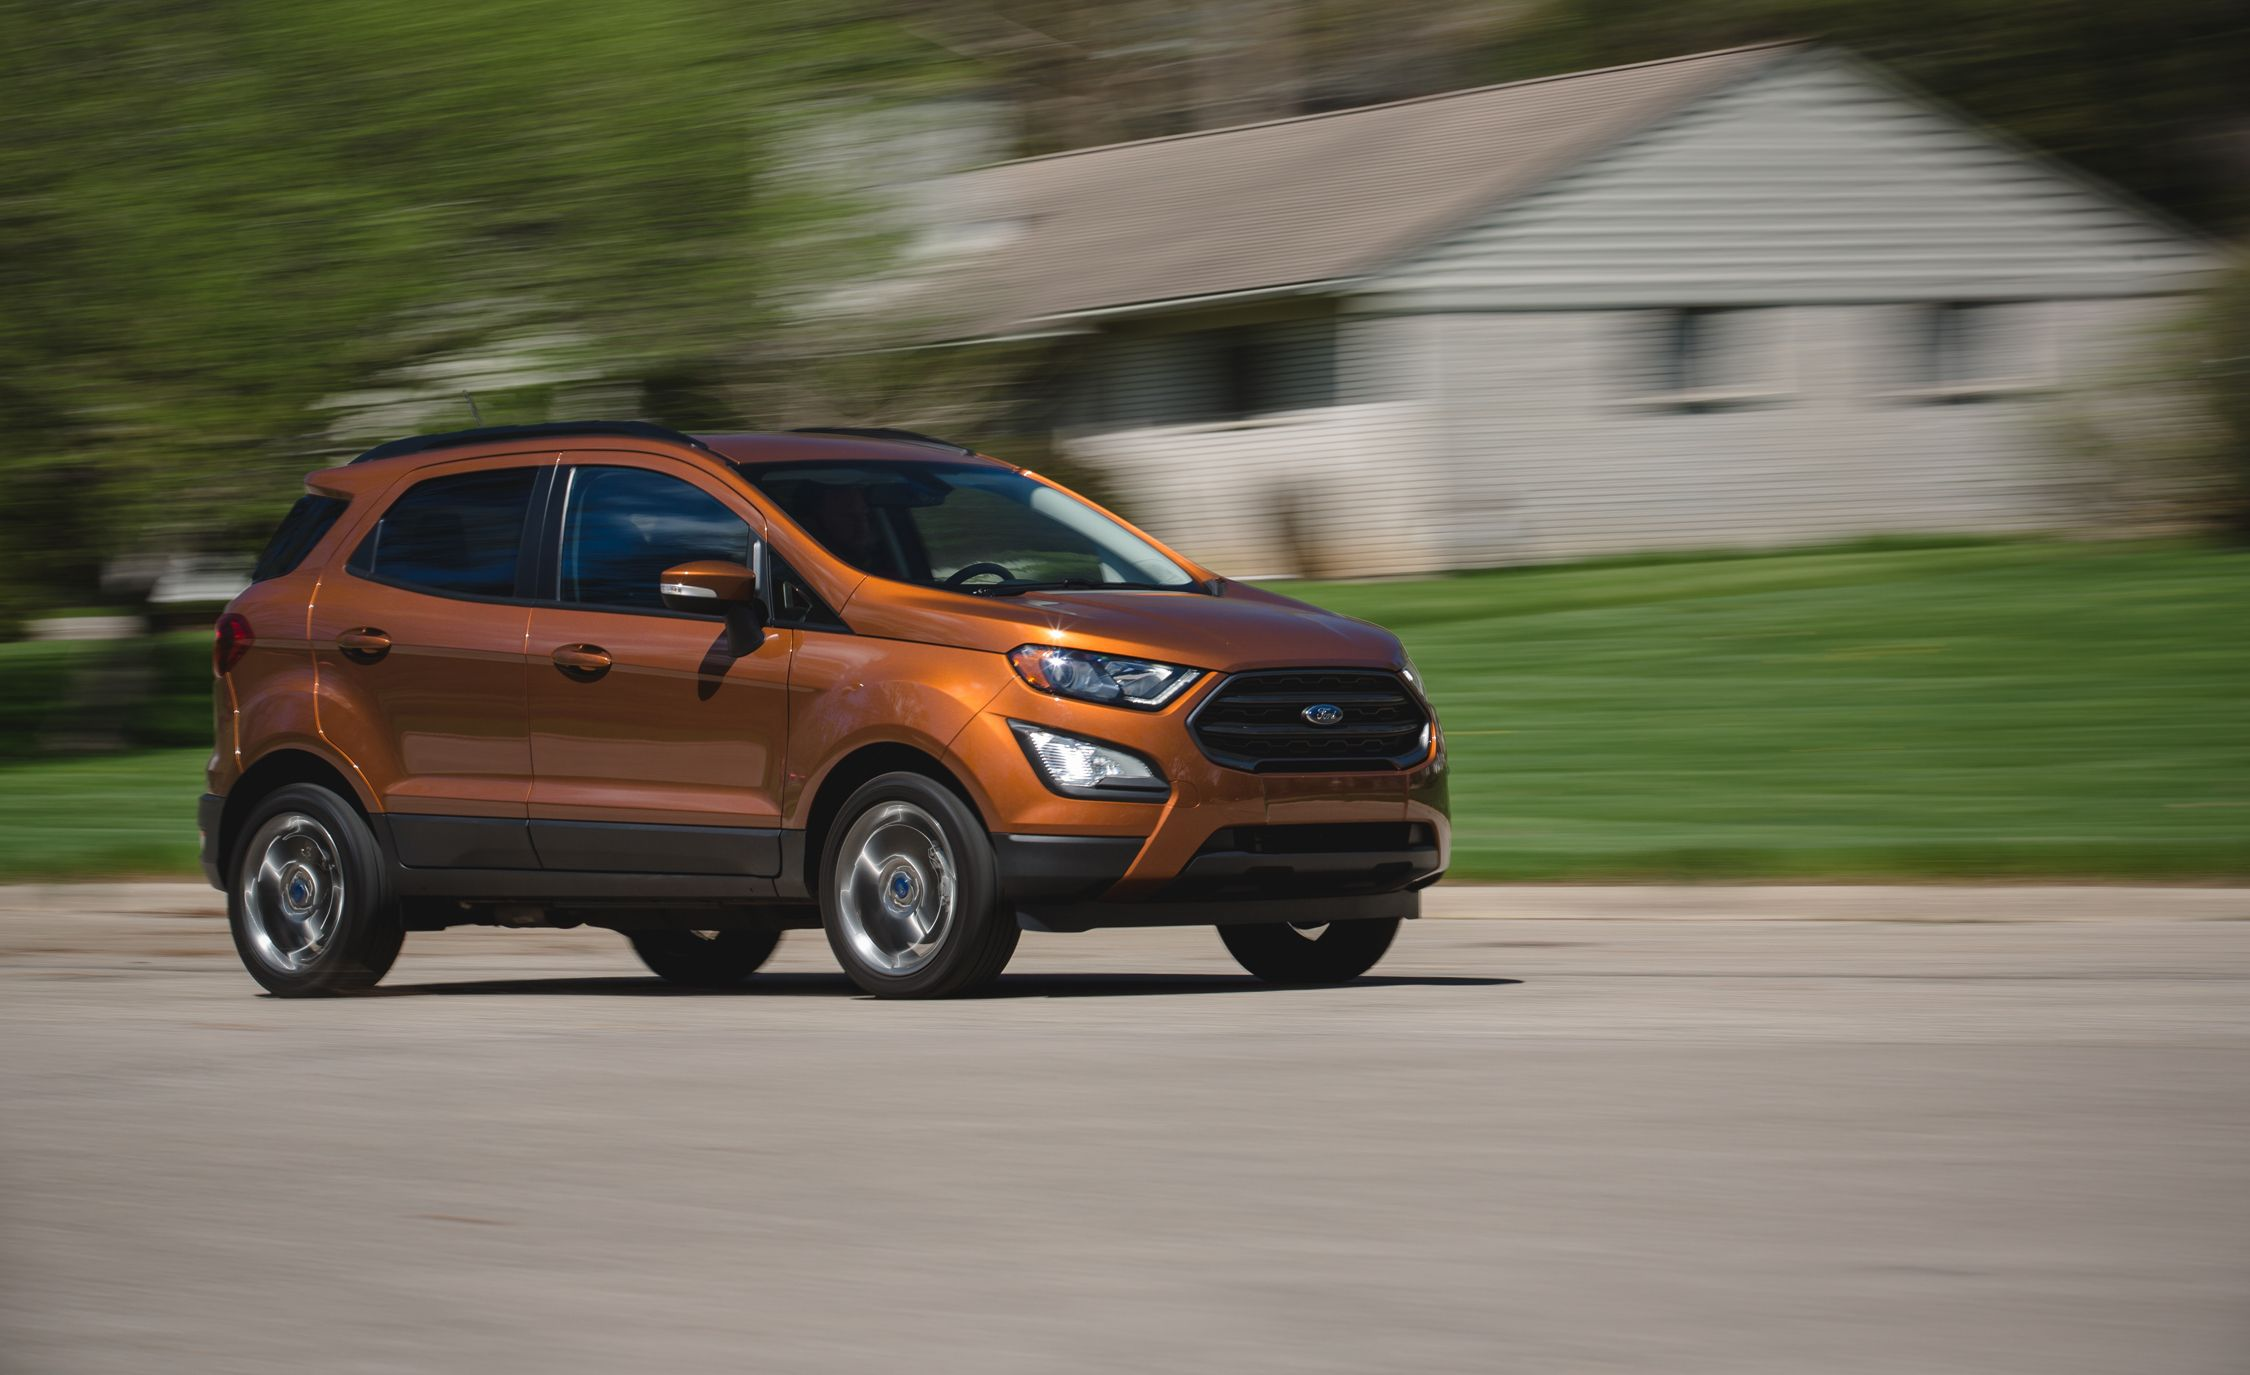 Toyota Build And Price >> 2018 Ford EcoSport 2.0L AWD Test | Review | Car and Driver